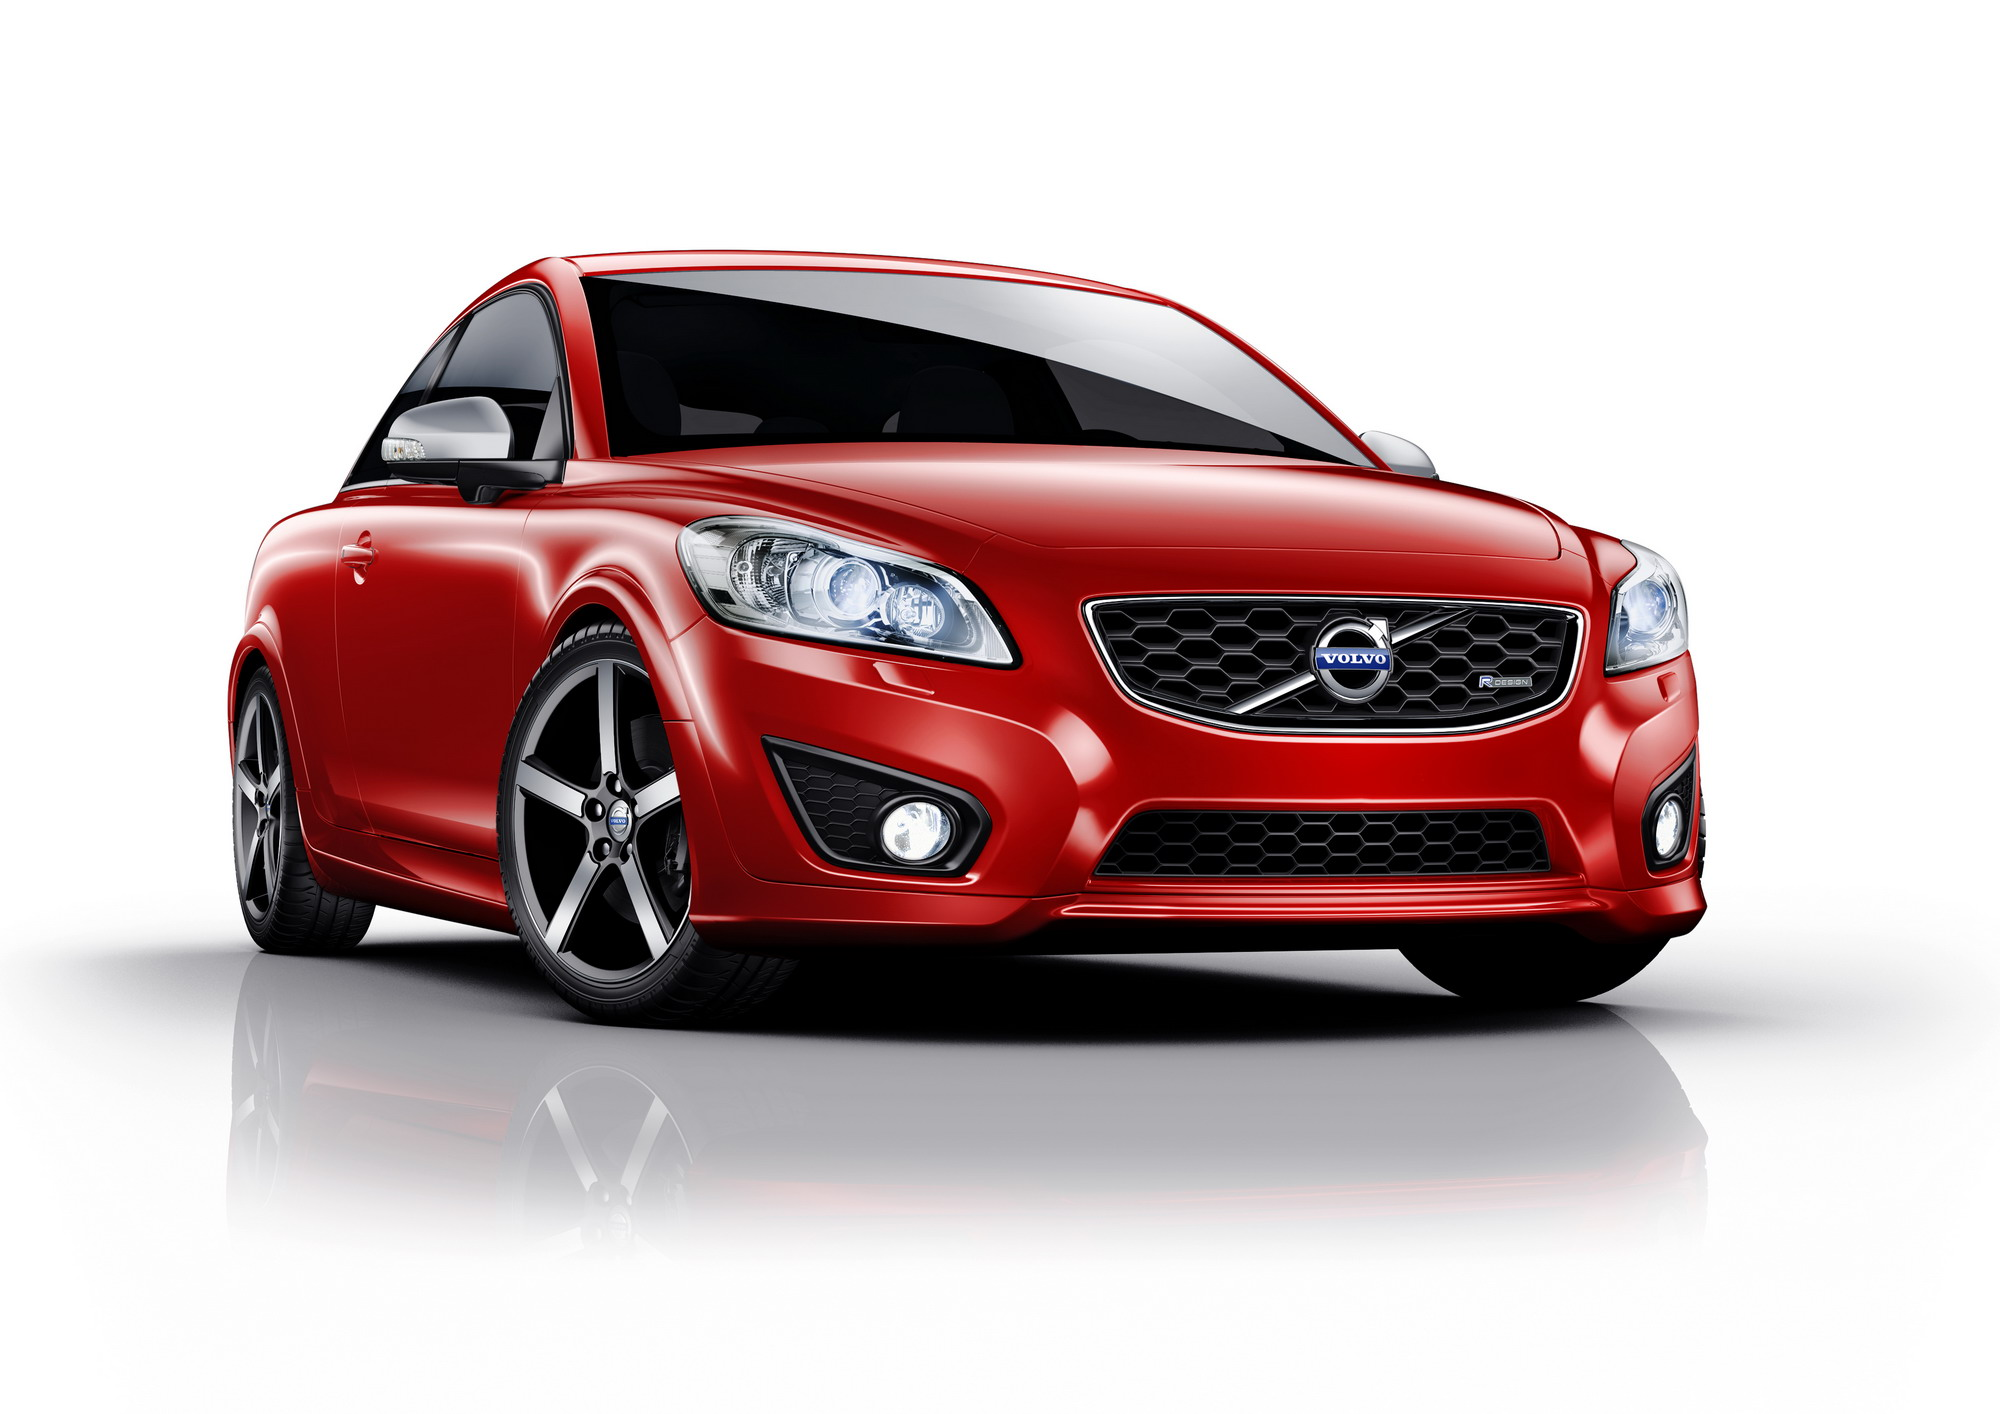 2011 Volvo C30 T5 And C30 T5 R-Design Prices Announced News - Top Speed